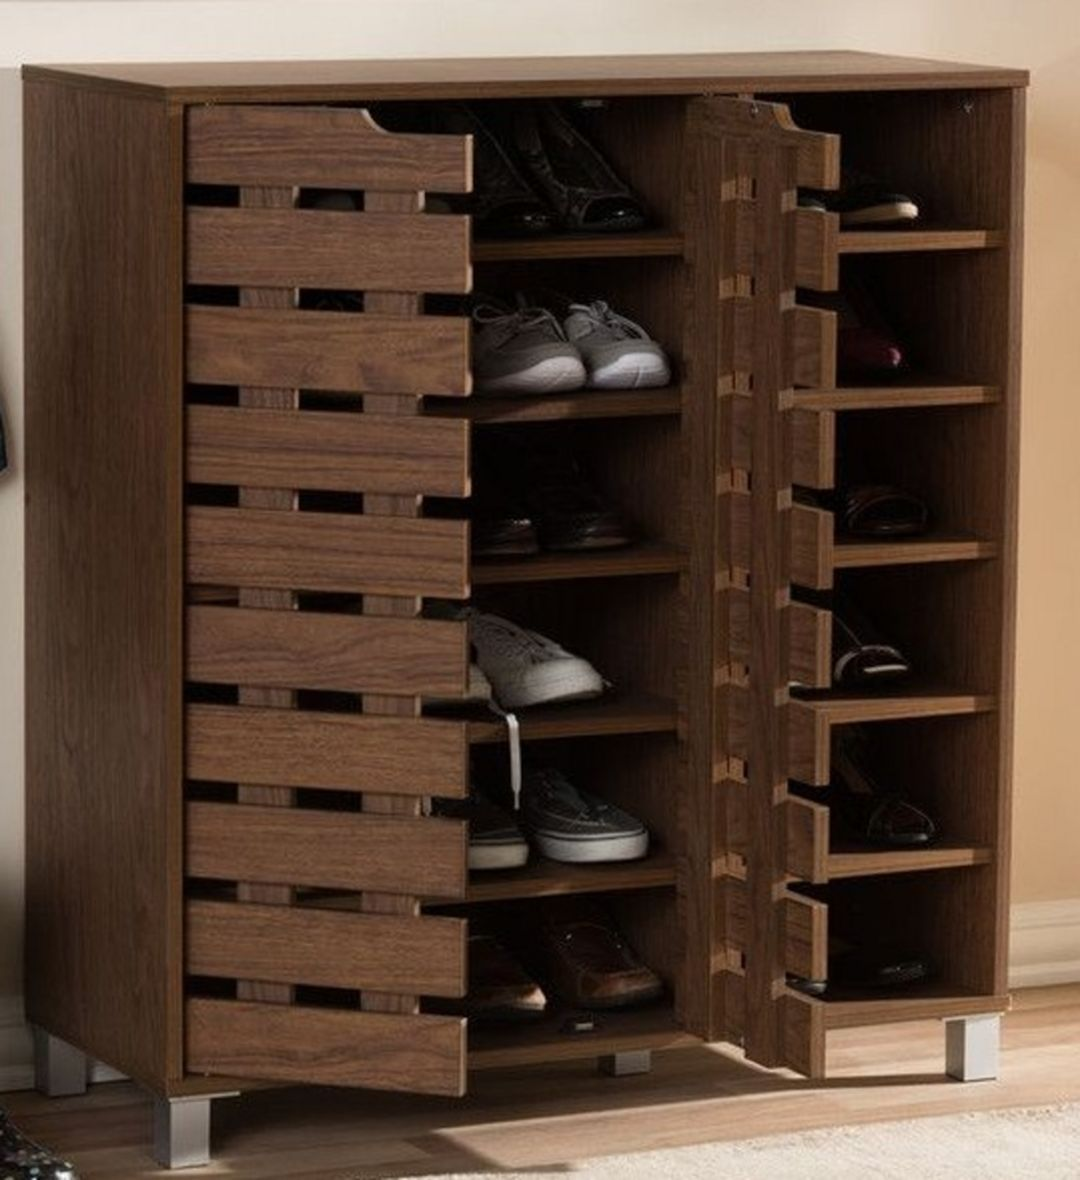 pin by lizavioletta on home interior ideas in 2020 on shoe rack wooden with door id=38013